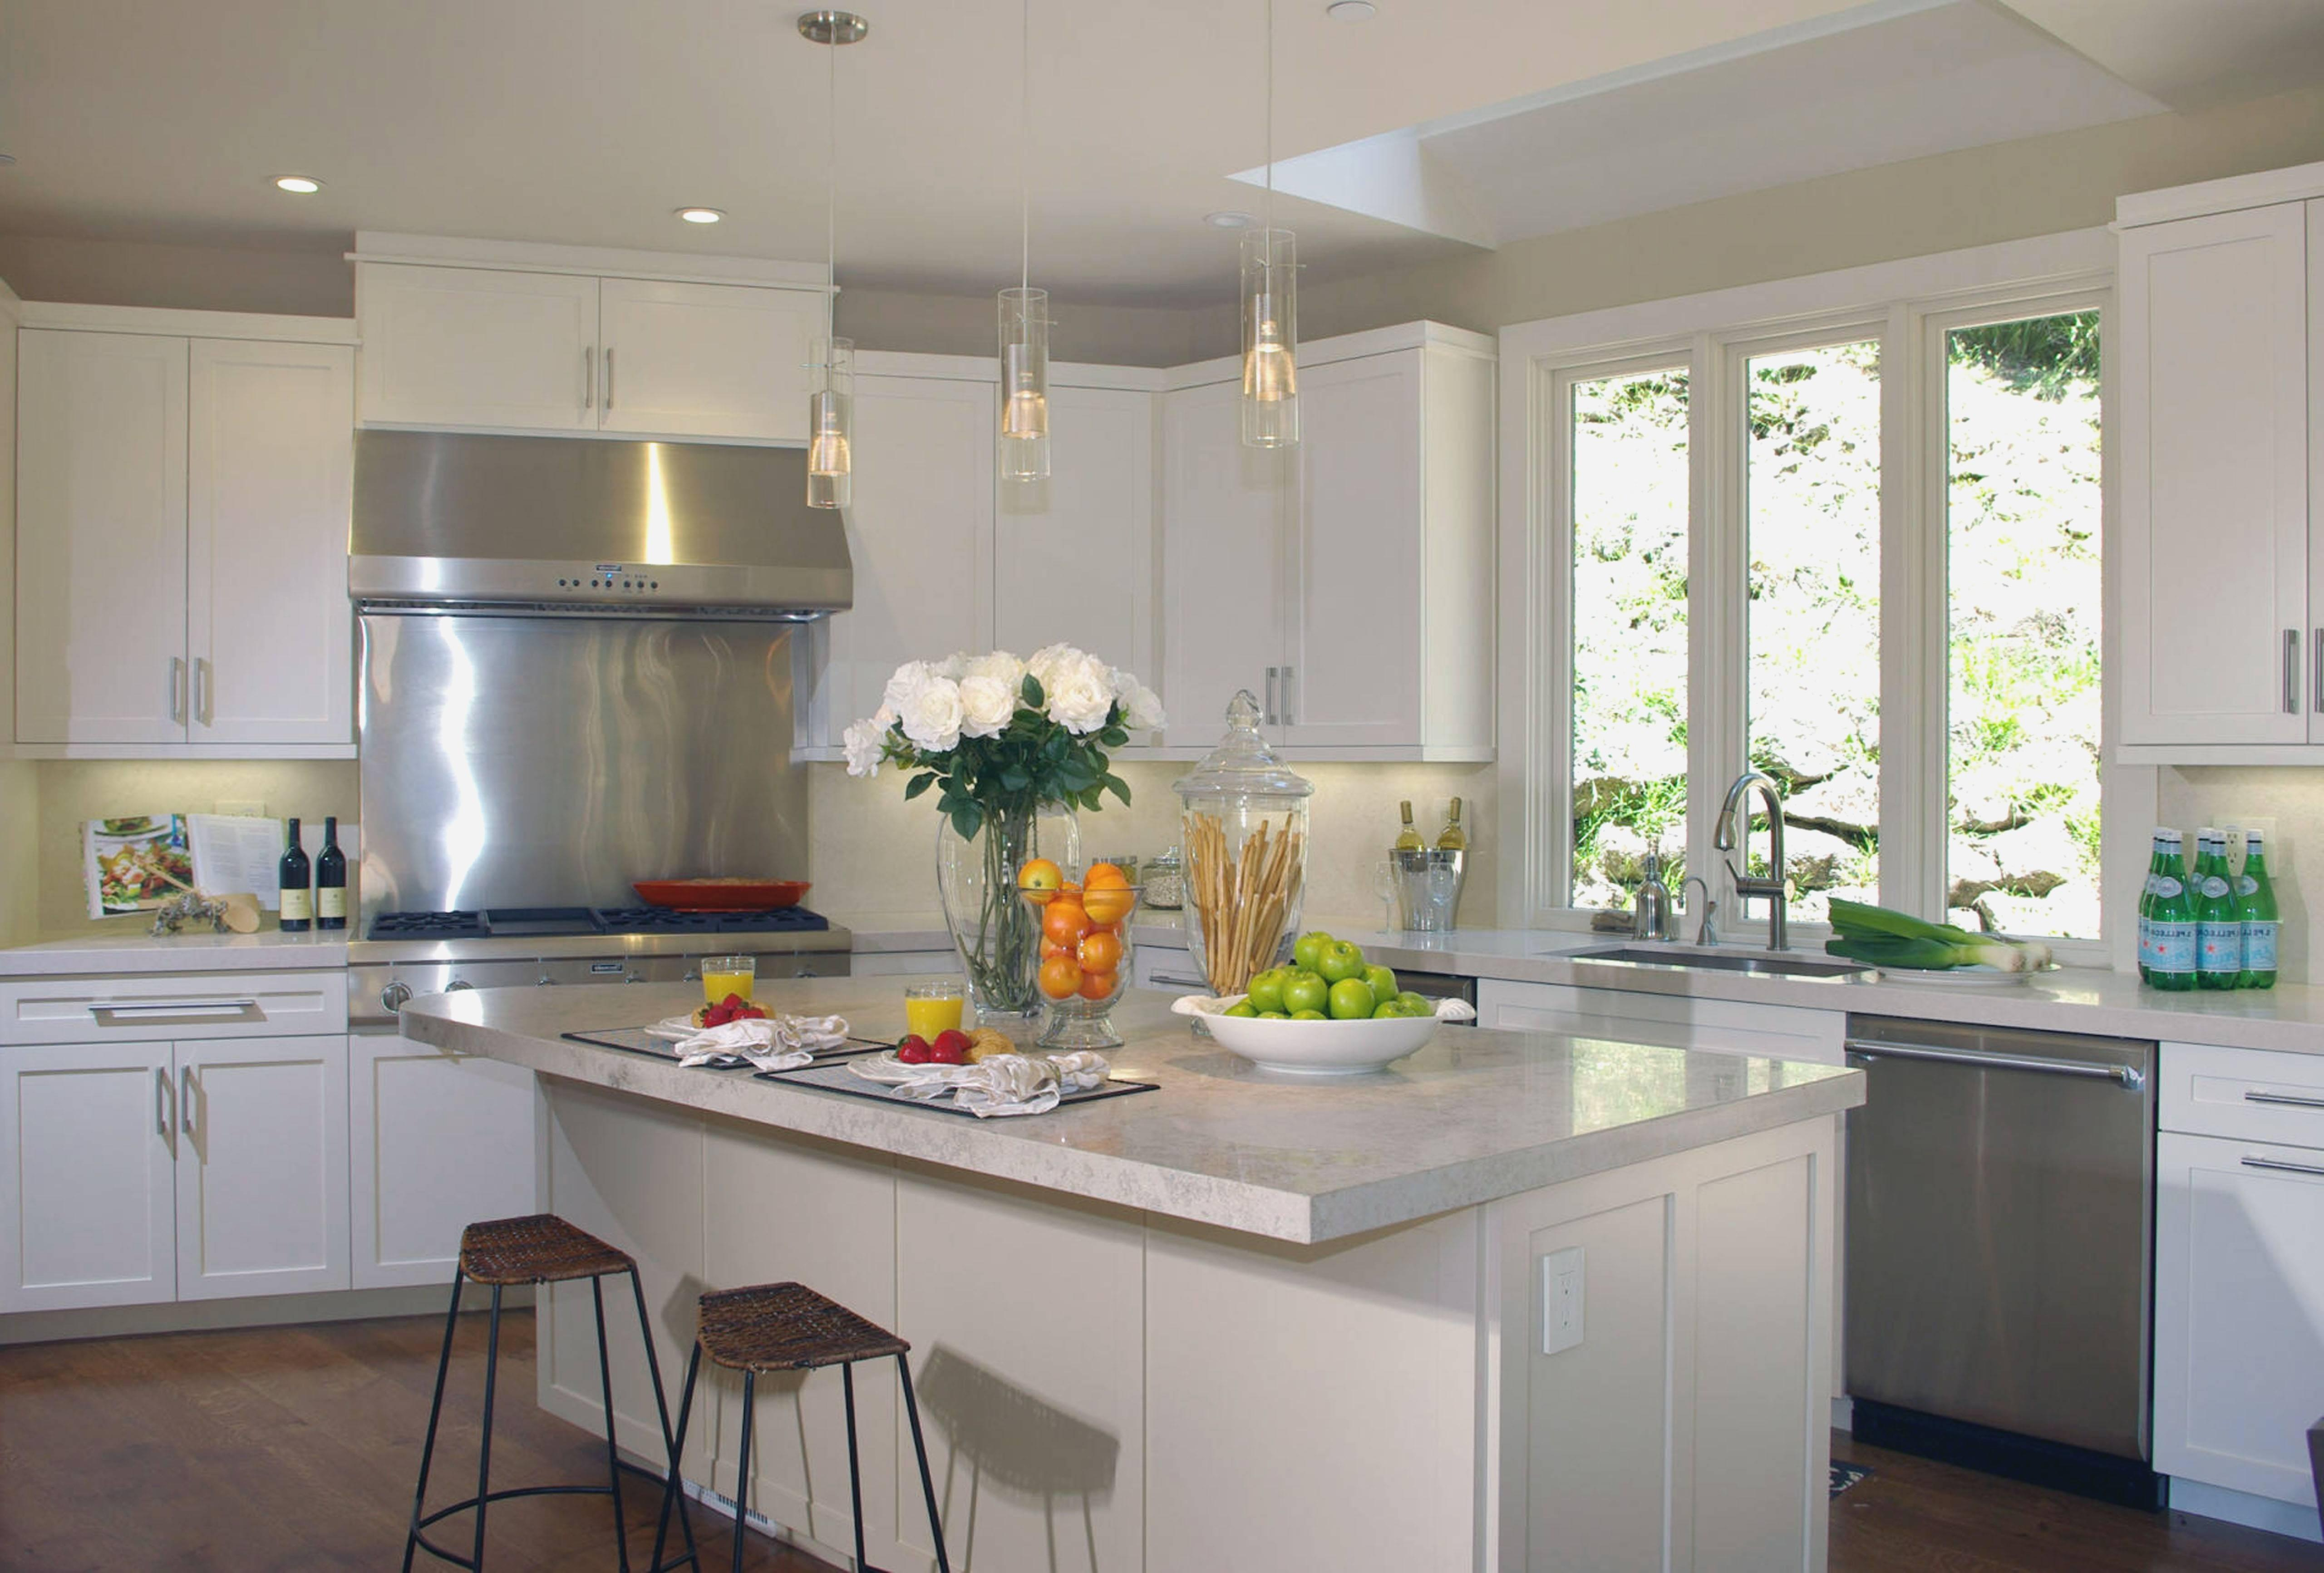 Enchanting Kitchen Architecture Your Creative